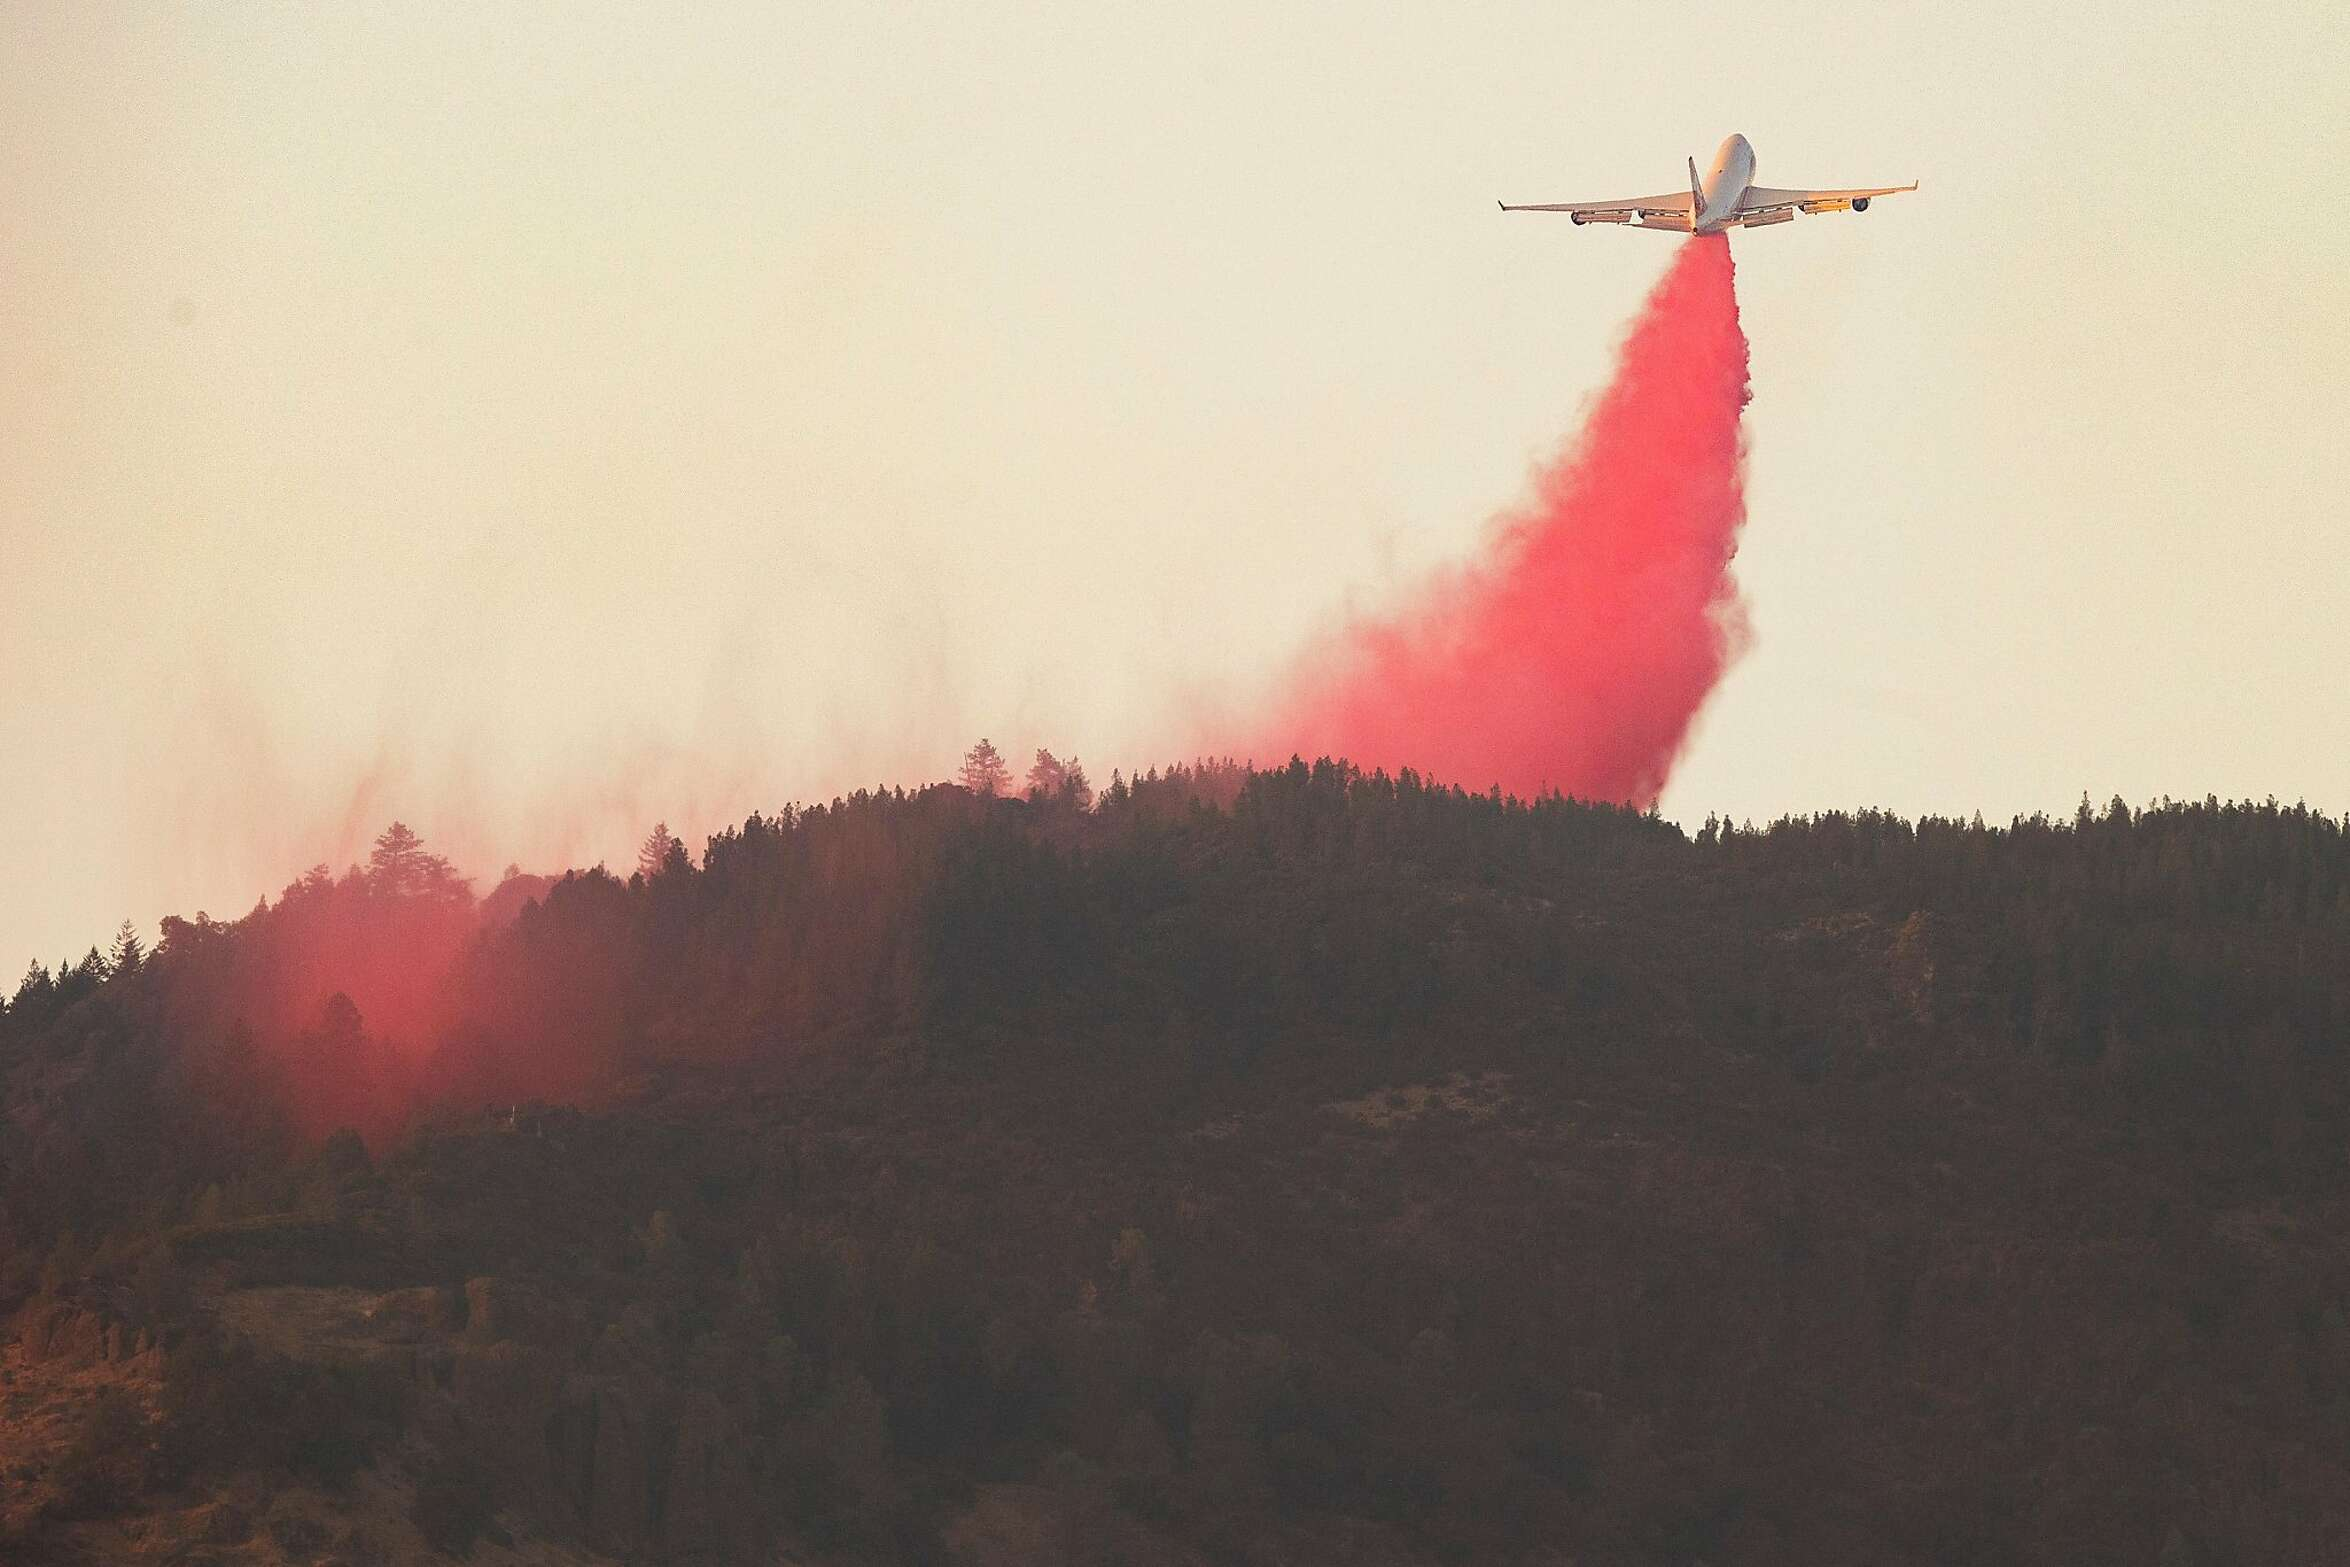 Boeing 747-446(BCF) releases fire retardant in an attempt to prevent the Glass Fire from reaching homes along Old Lawley Toll Road and from reaching Highway 29, Wednesday, Sept. 30, 2020, in Calistoga, Calif.